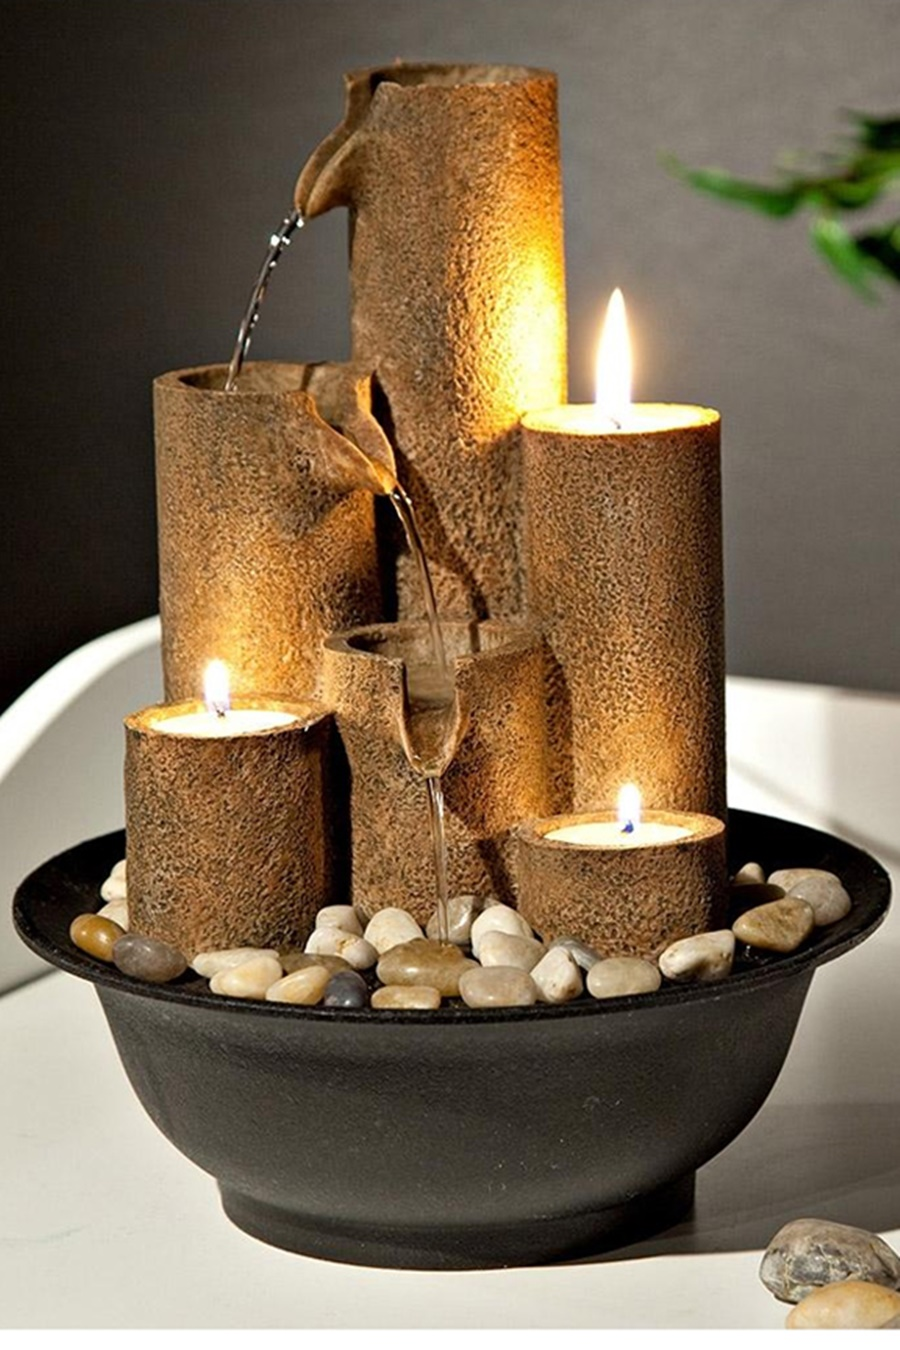 Image of: DIY Tabletop Fountain Ideas